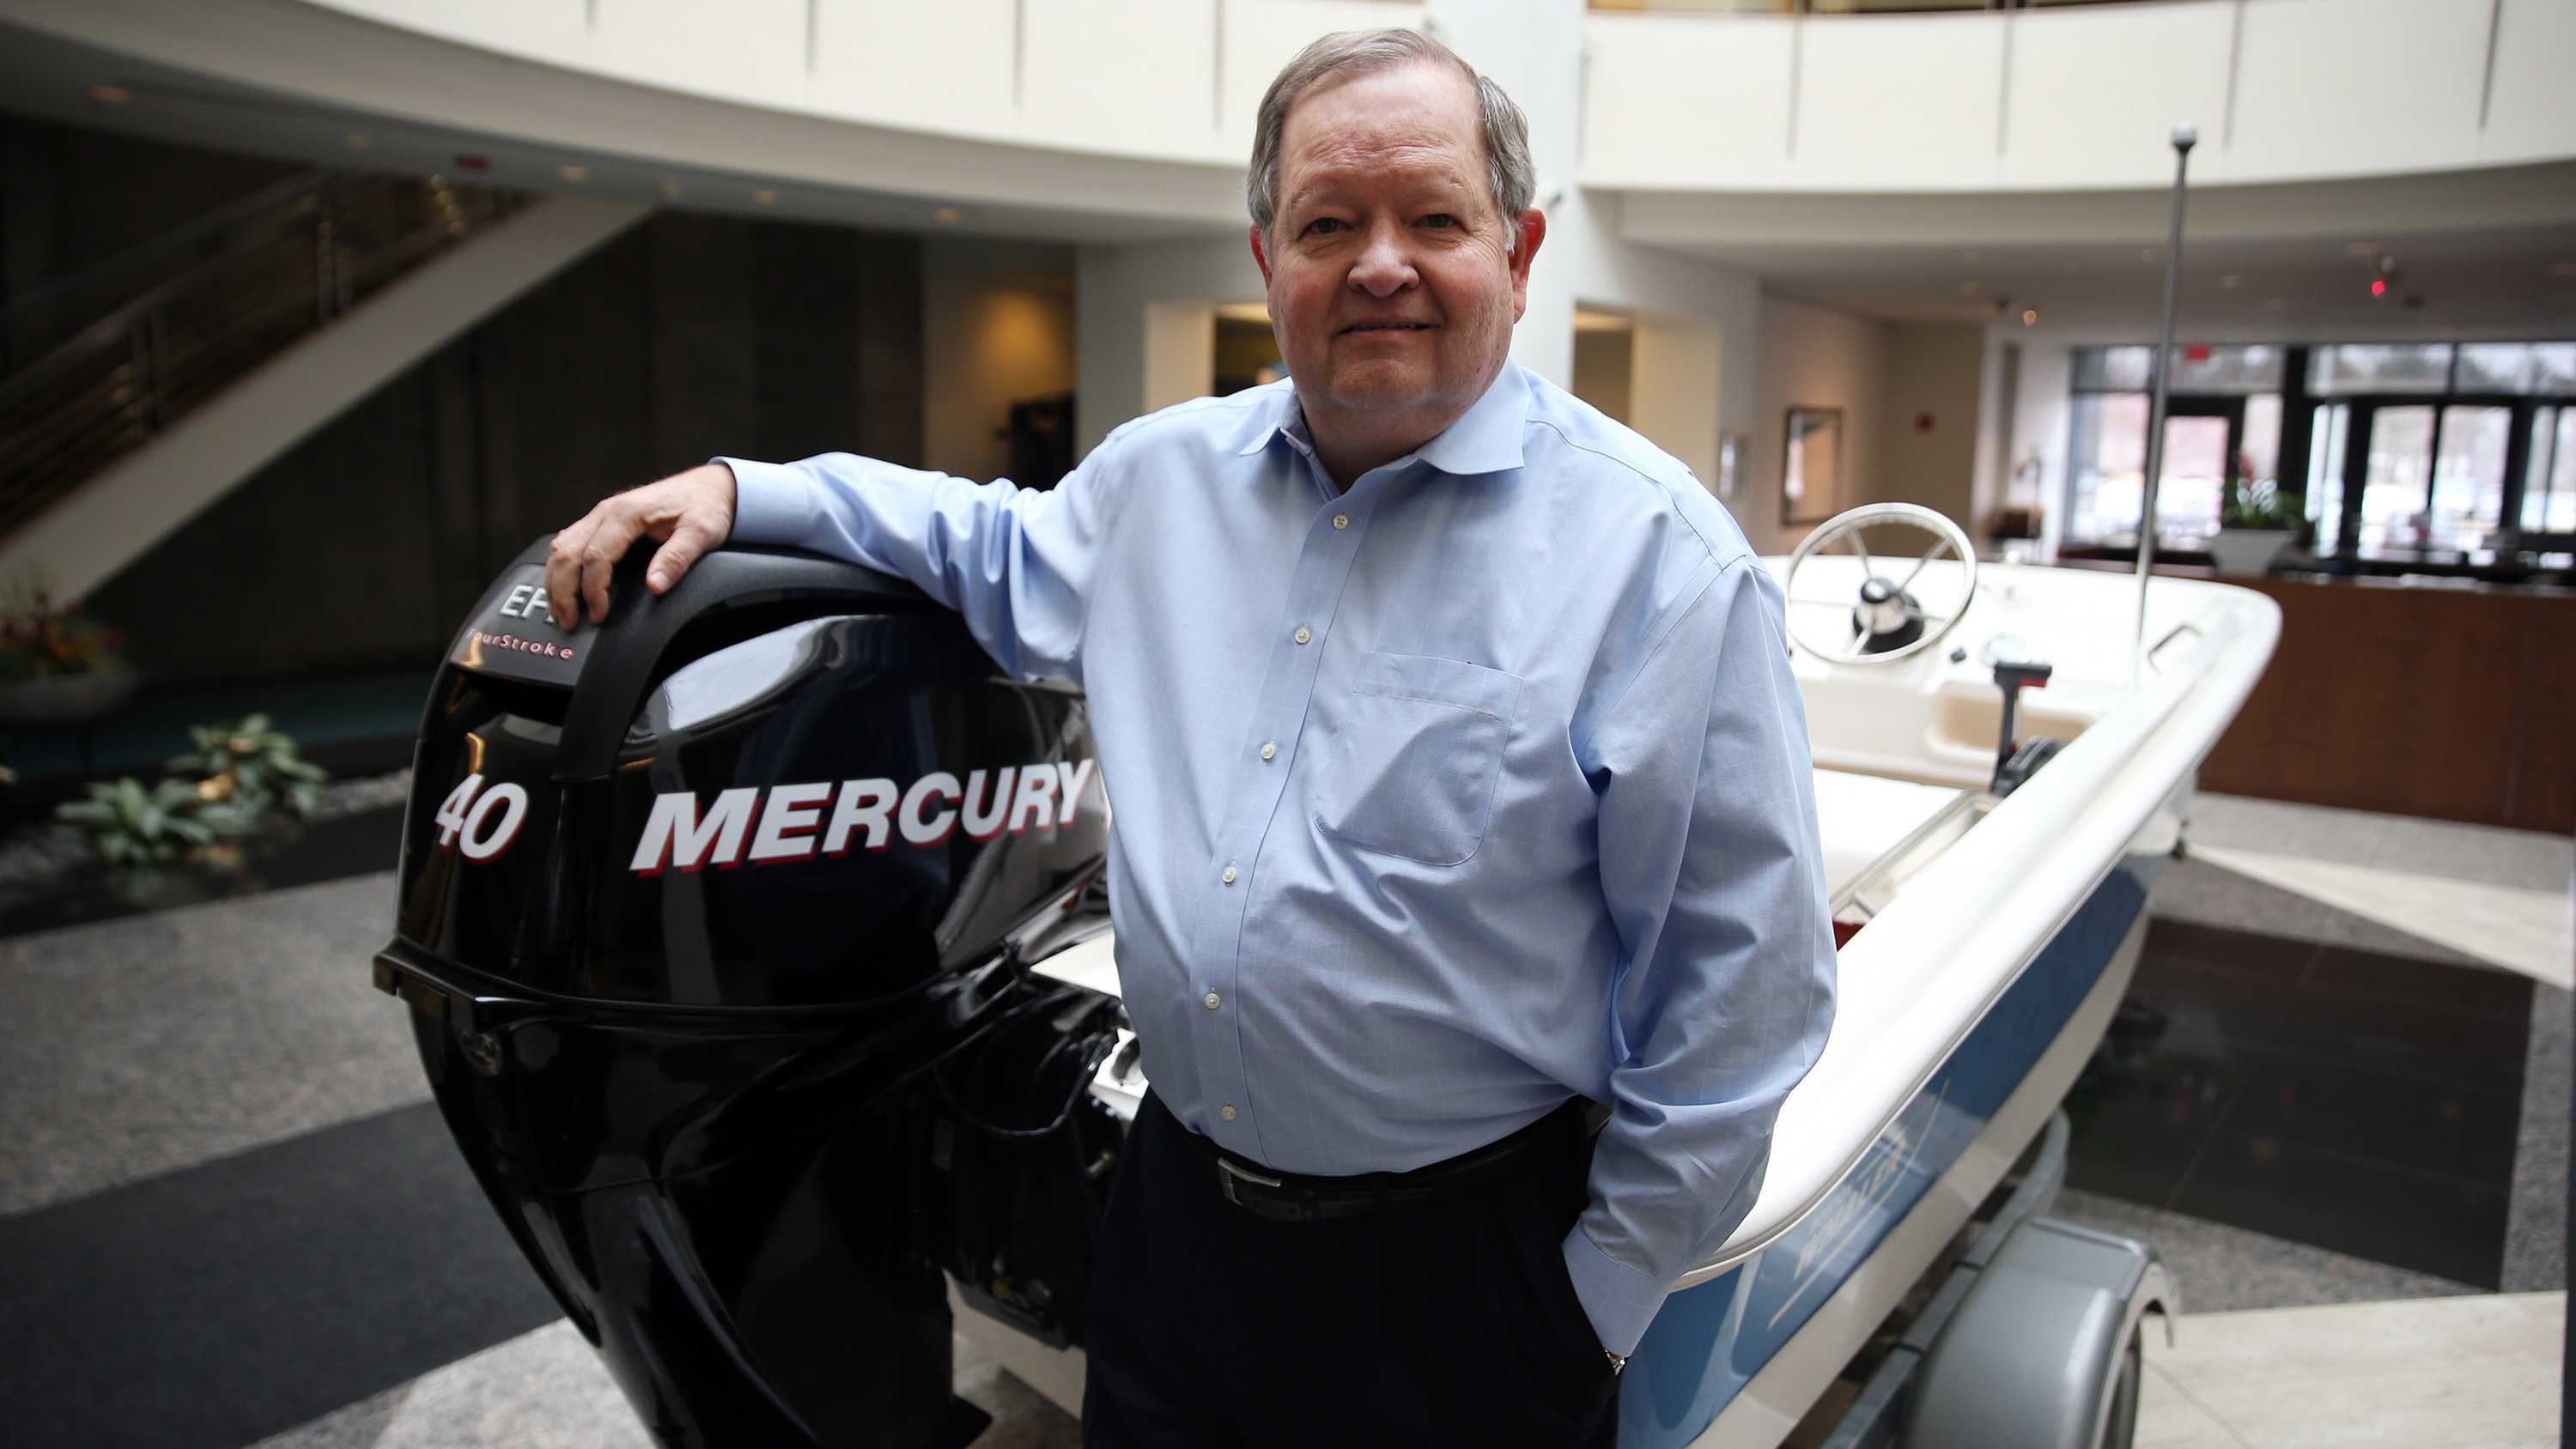 Brunswick Corporation Chairman and Chief Executive Officer Mark D. Schwabero is seen with one of the company's boats and engines at the company's headquarters on Thursday, Feb. 19, 2016 in Lake Forest, Ill.